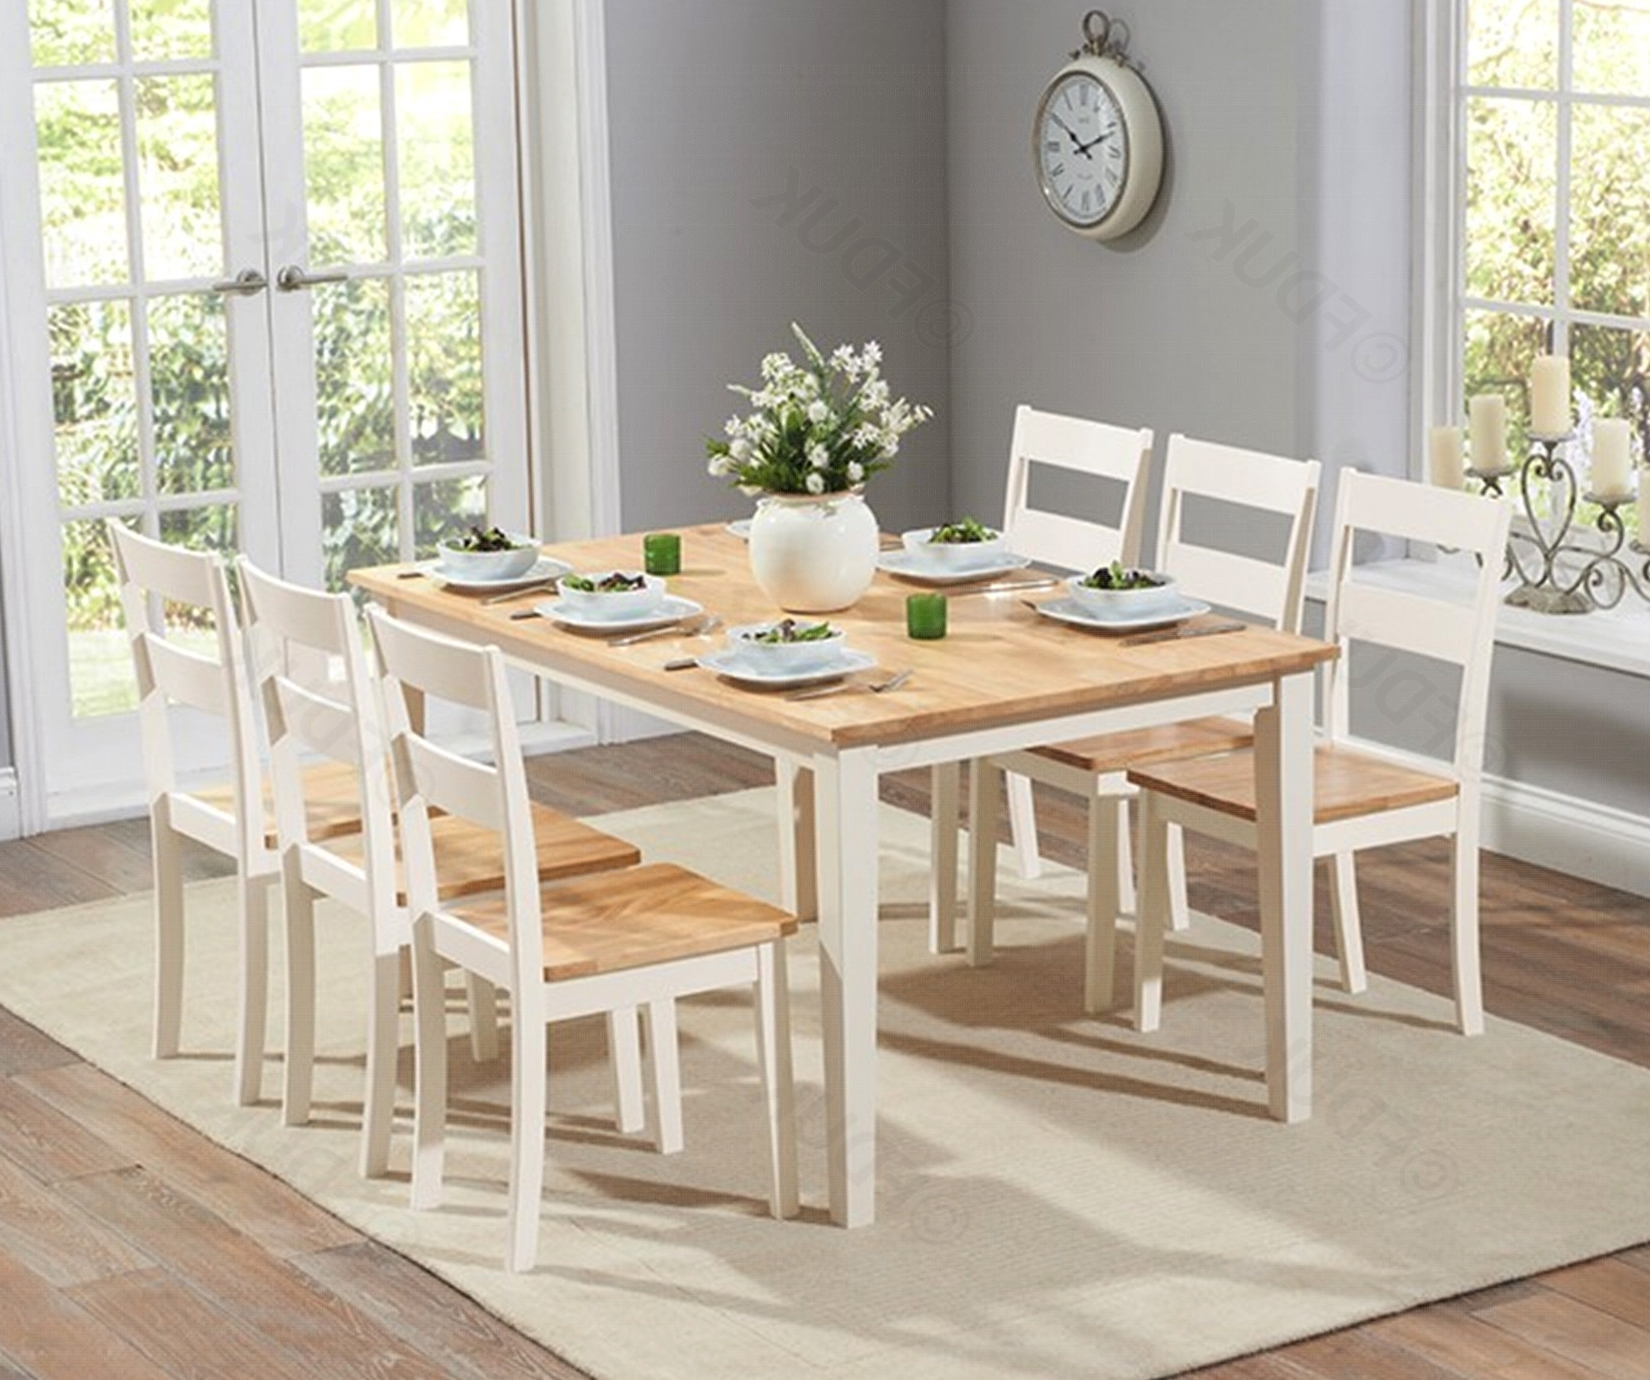 Featured Photo of Cream And Wood Dining Tables